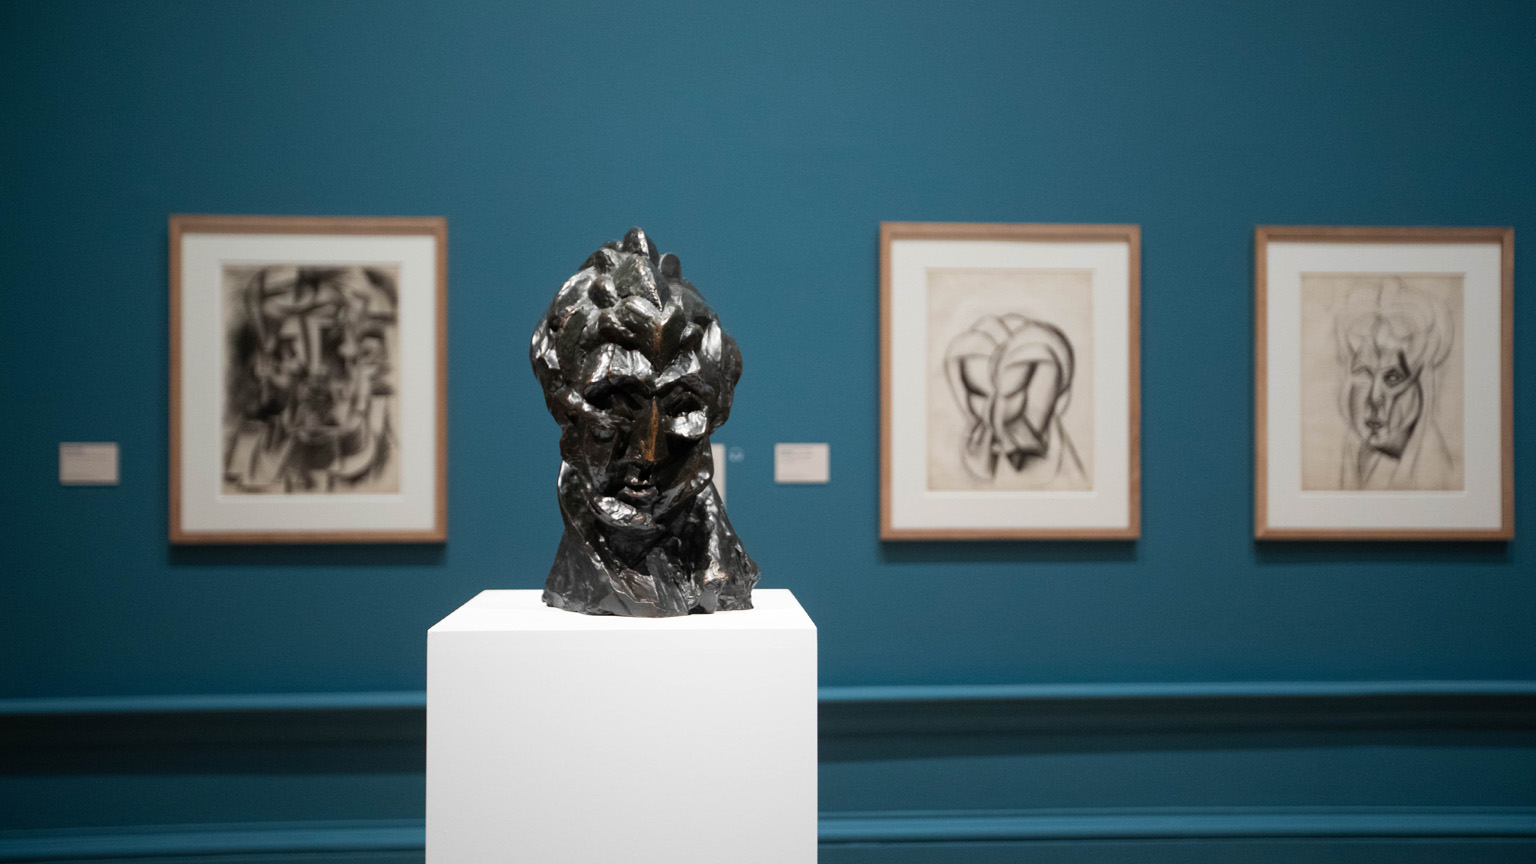 Installation view of the 'Picasso and Paper' exhibition at the Royal Academy of Arts, London (25 January - 13 April 2020)